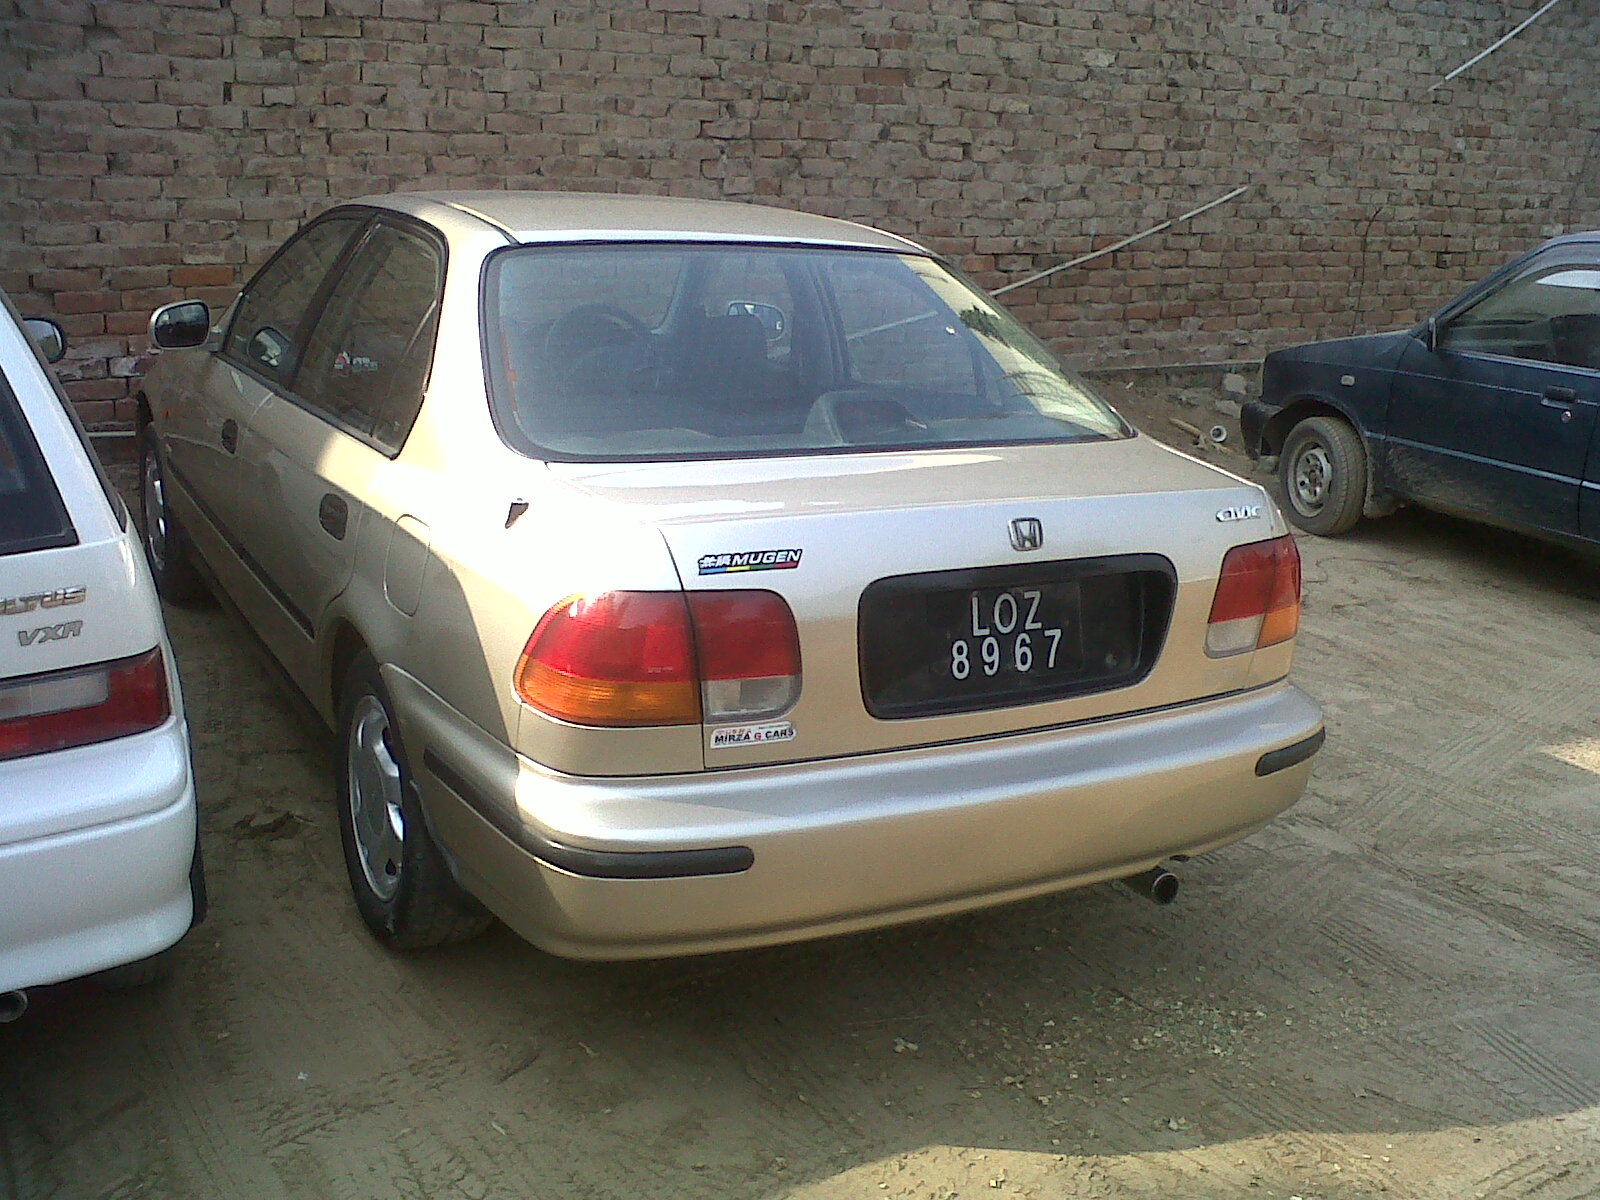 Sell My Car Online >> Honda Civic 1996 of Civic95_Reborn - Member Ride 14597 | PakWheels